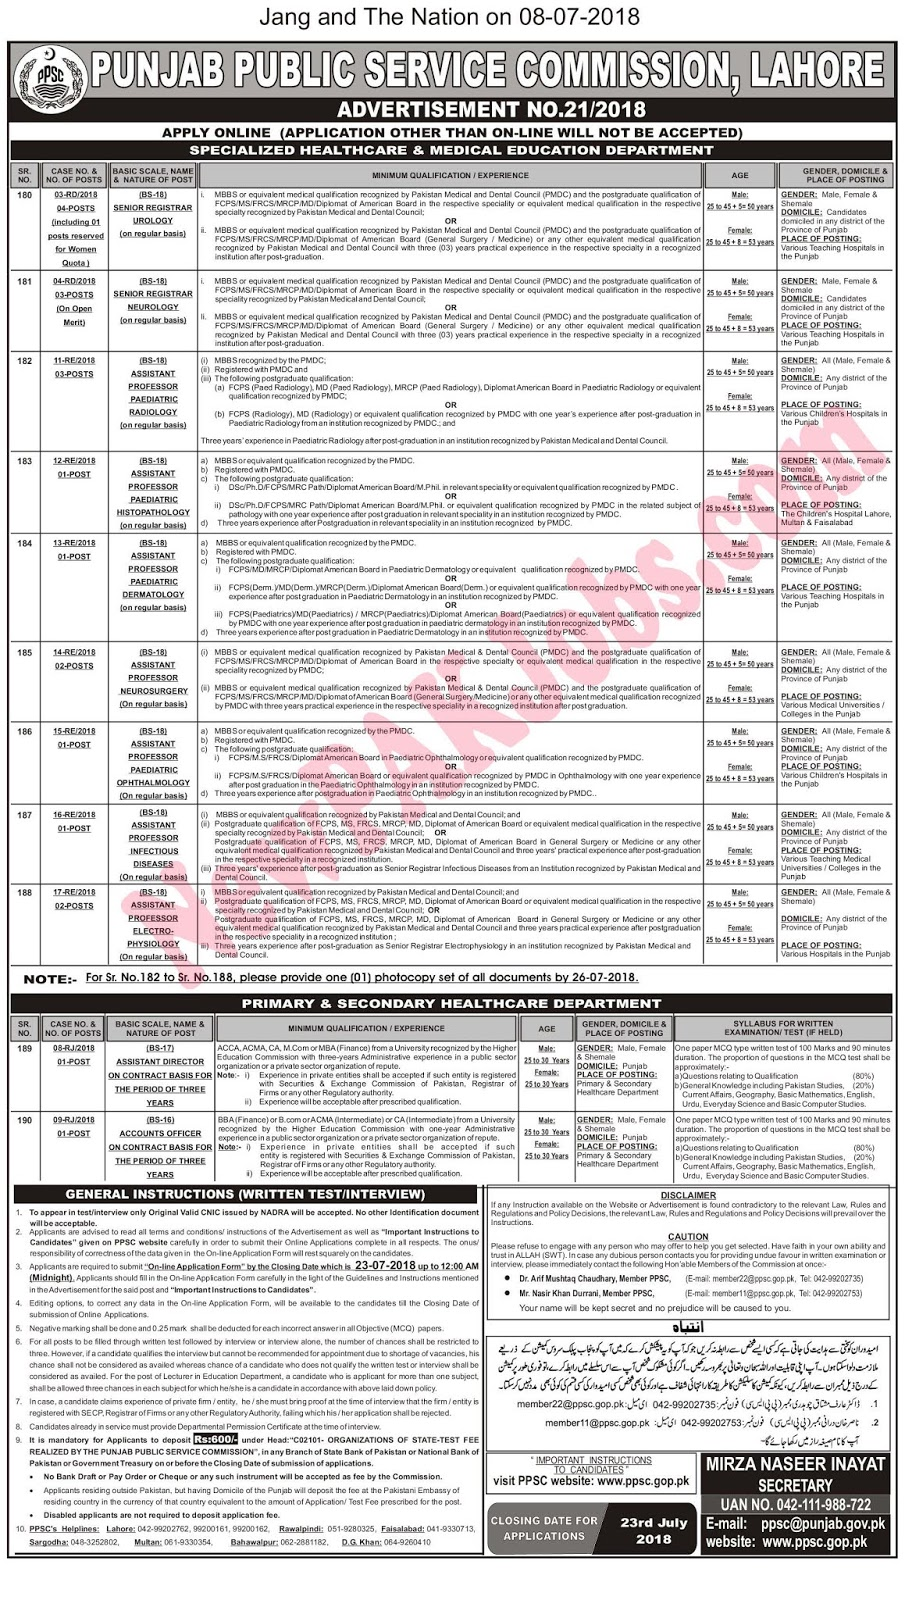 PPSC Jobs July 2018 Advertisement No. 21/ 2018